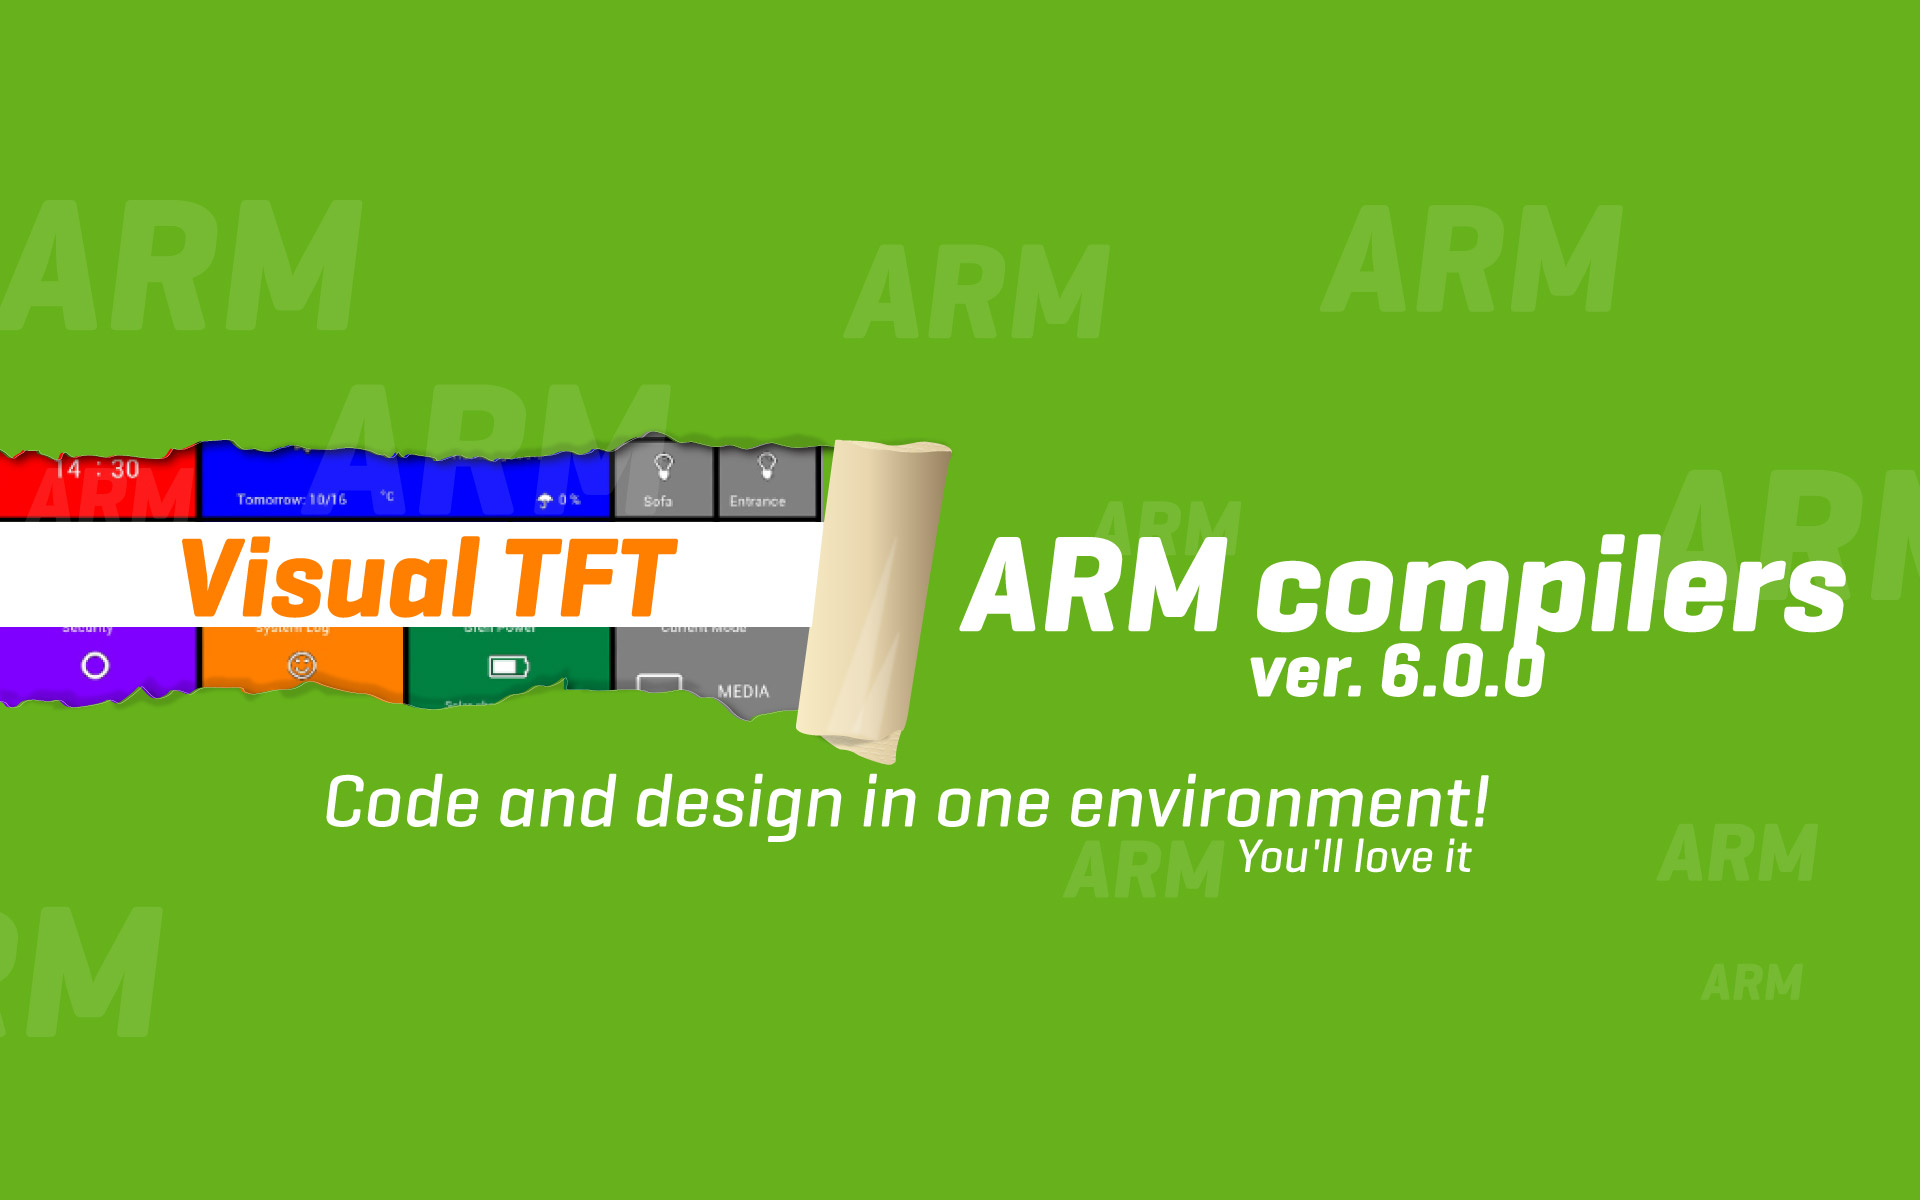 ARM compilers version 6.0.0 - design and compile in one environment